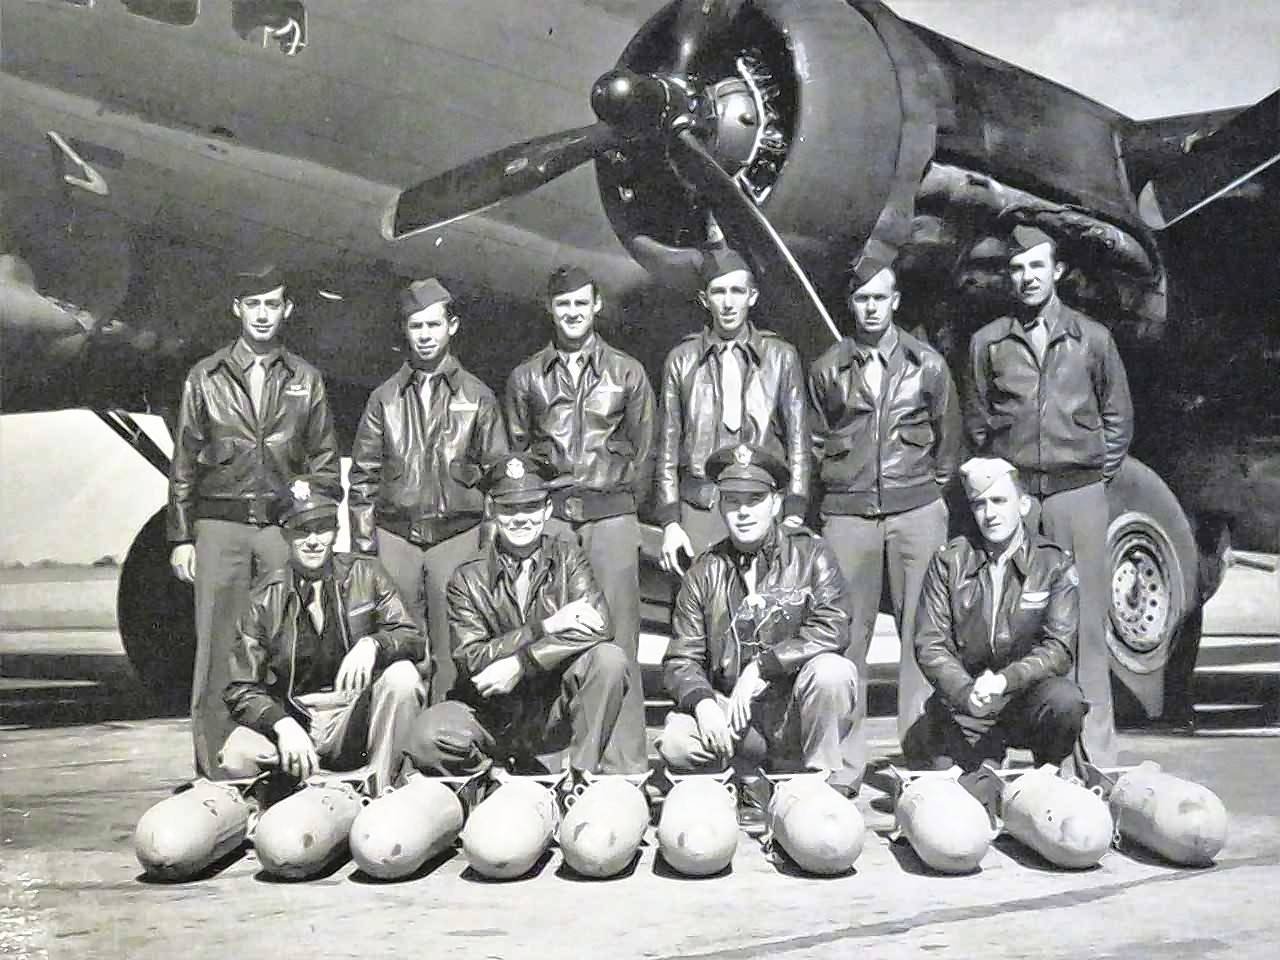 Chuck Wayman, first row, third from left, with his crew in front of a B-17 during World War II. Wayman, a Des Plaines resident, died in 2000.